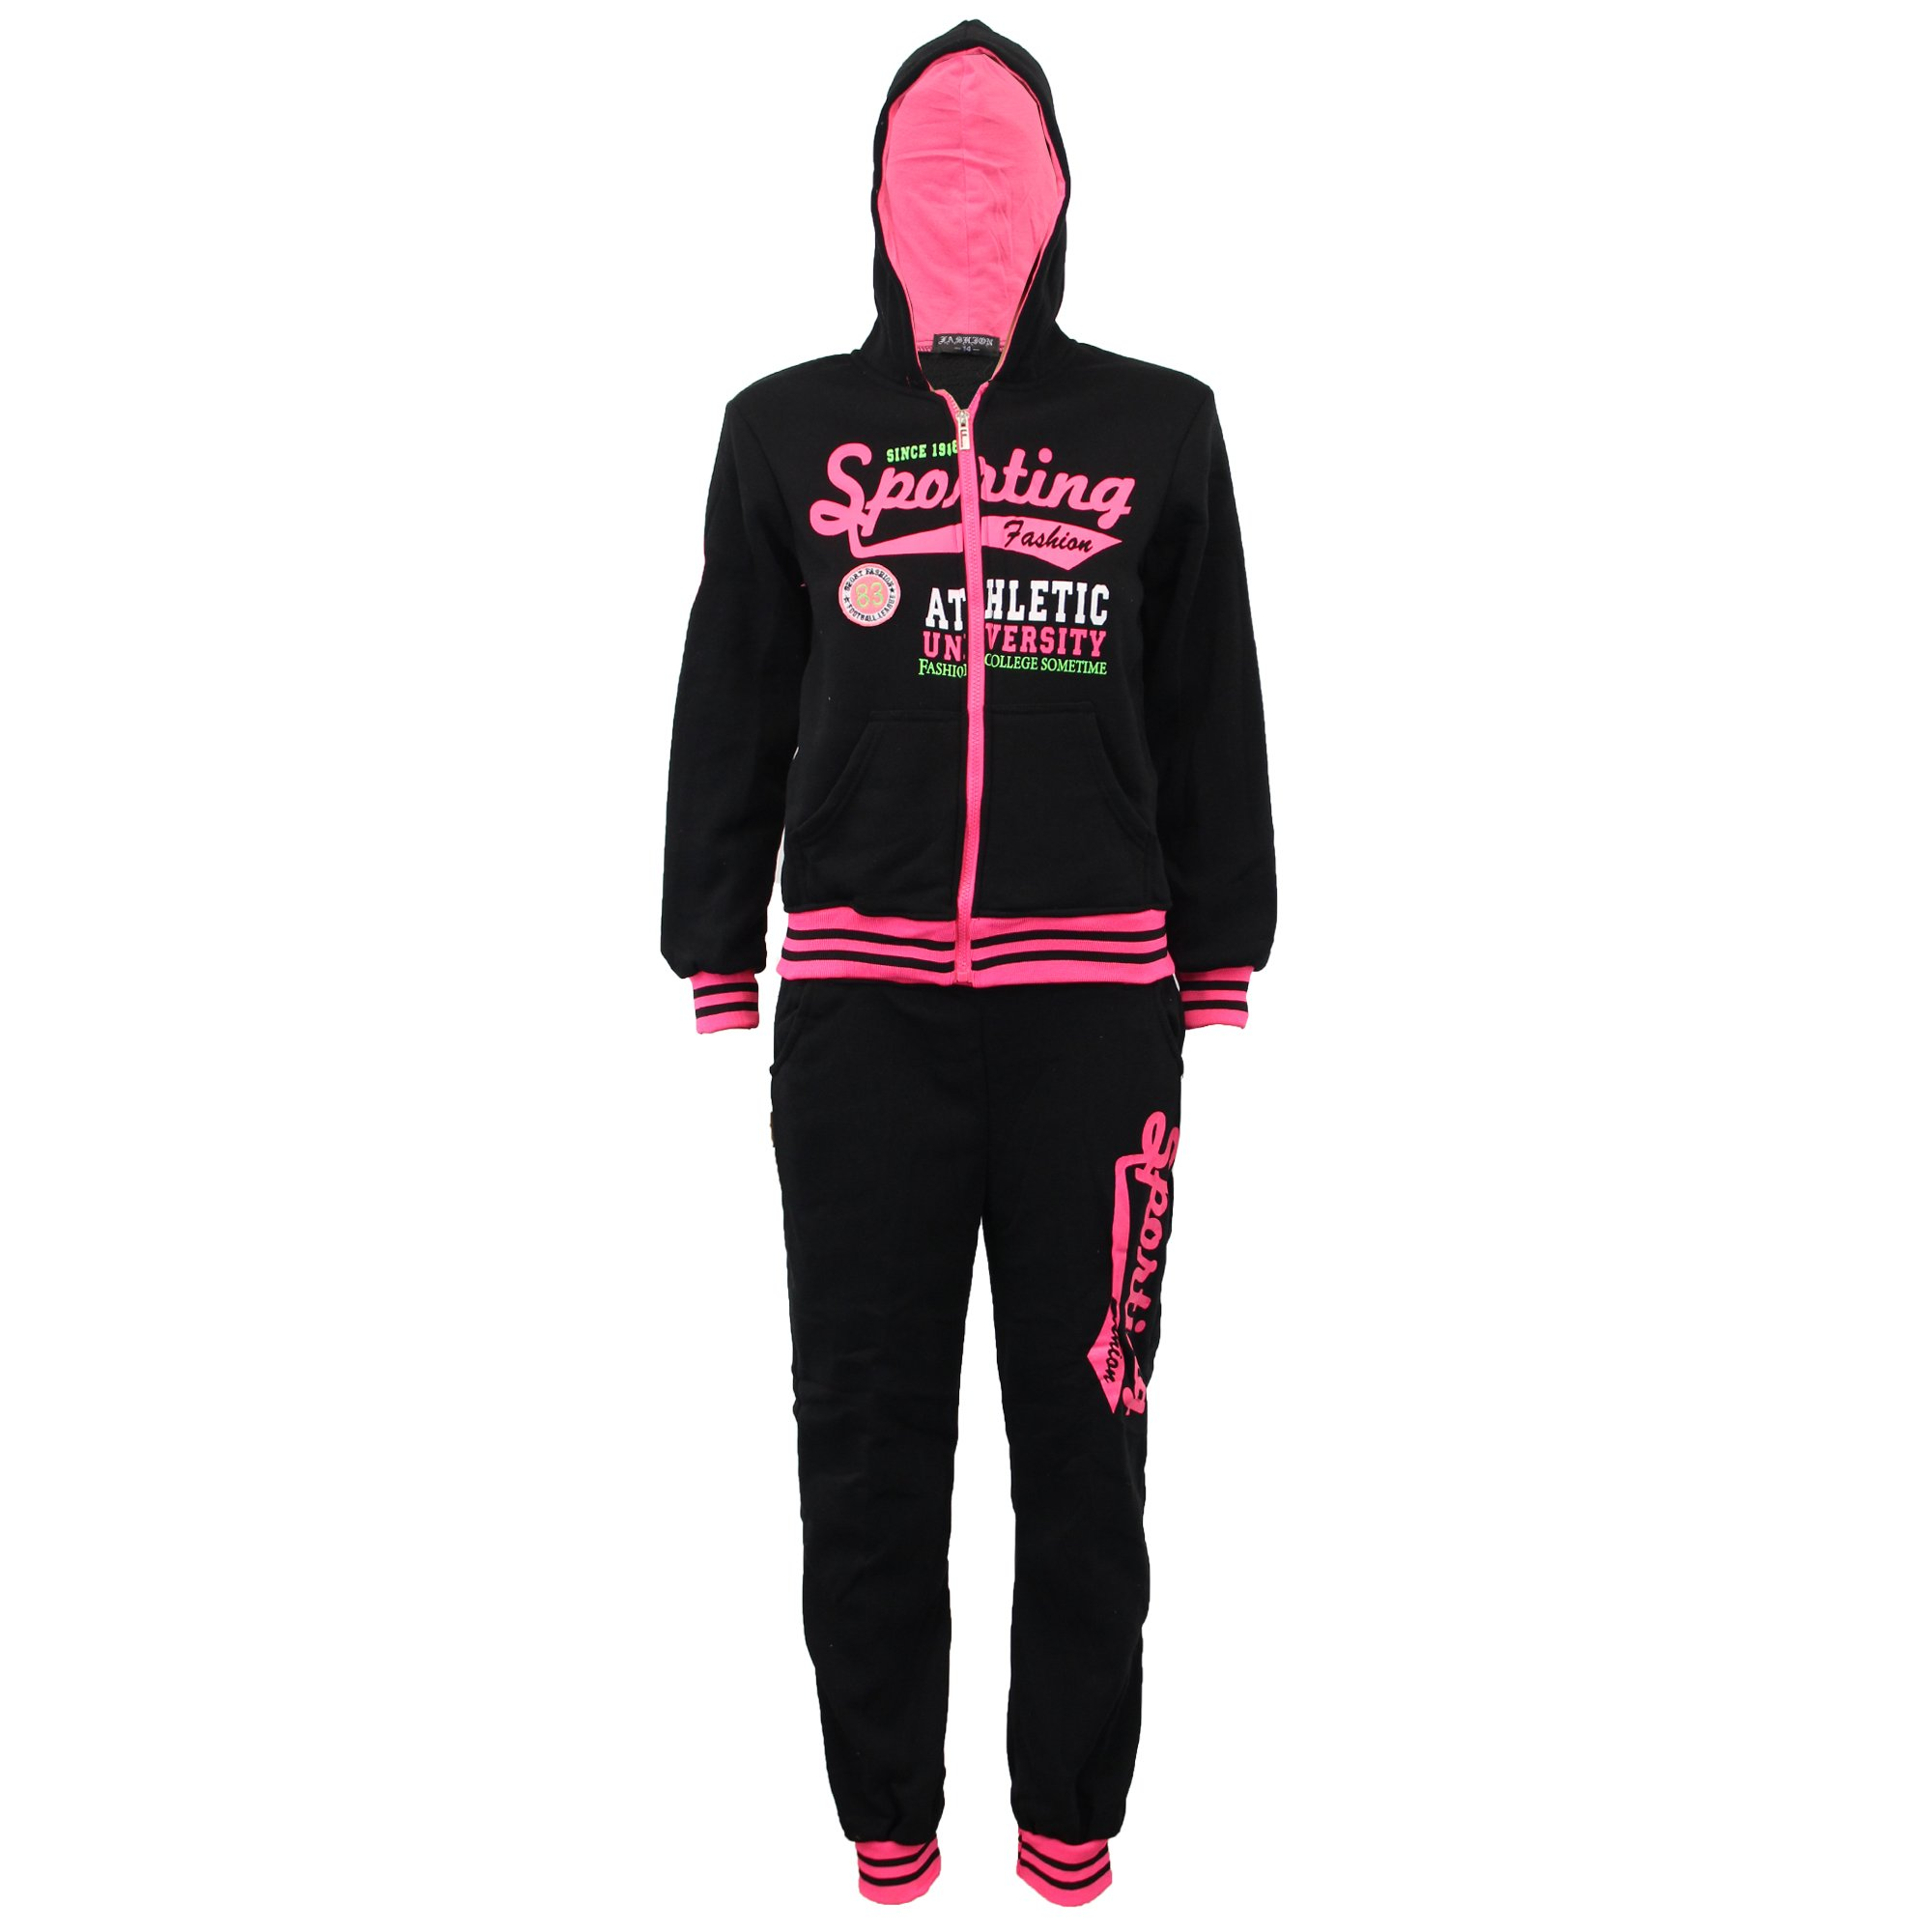 Boys' Tracksuit C73 Black/Fuchsia Size 14 10/11 Years by Unknown (Image #2)